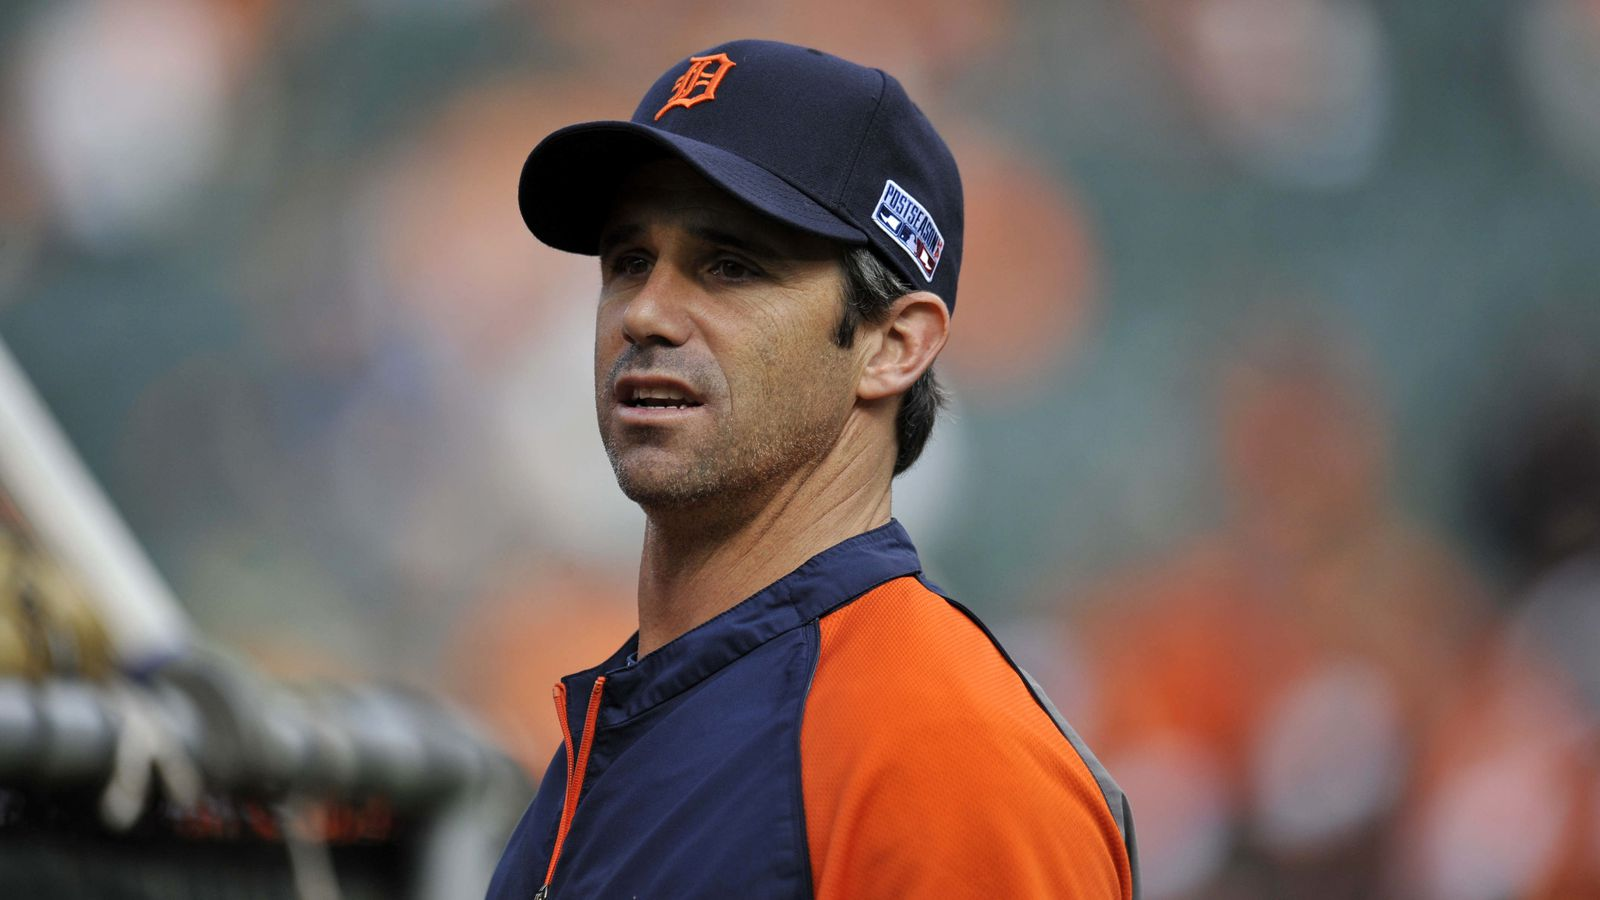 Is Brad Ausmus to blam...